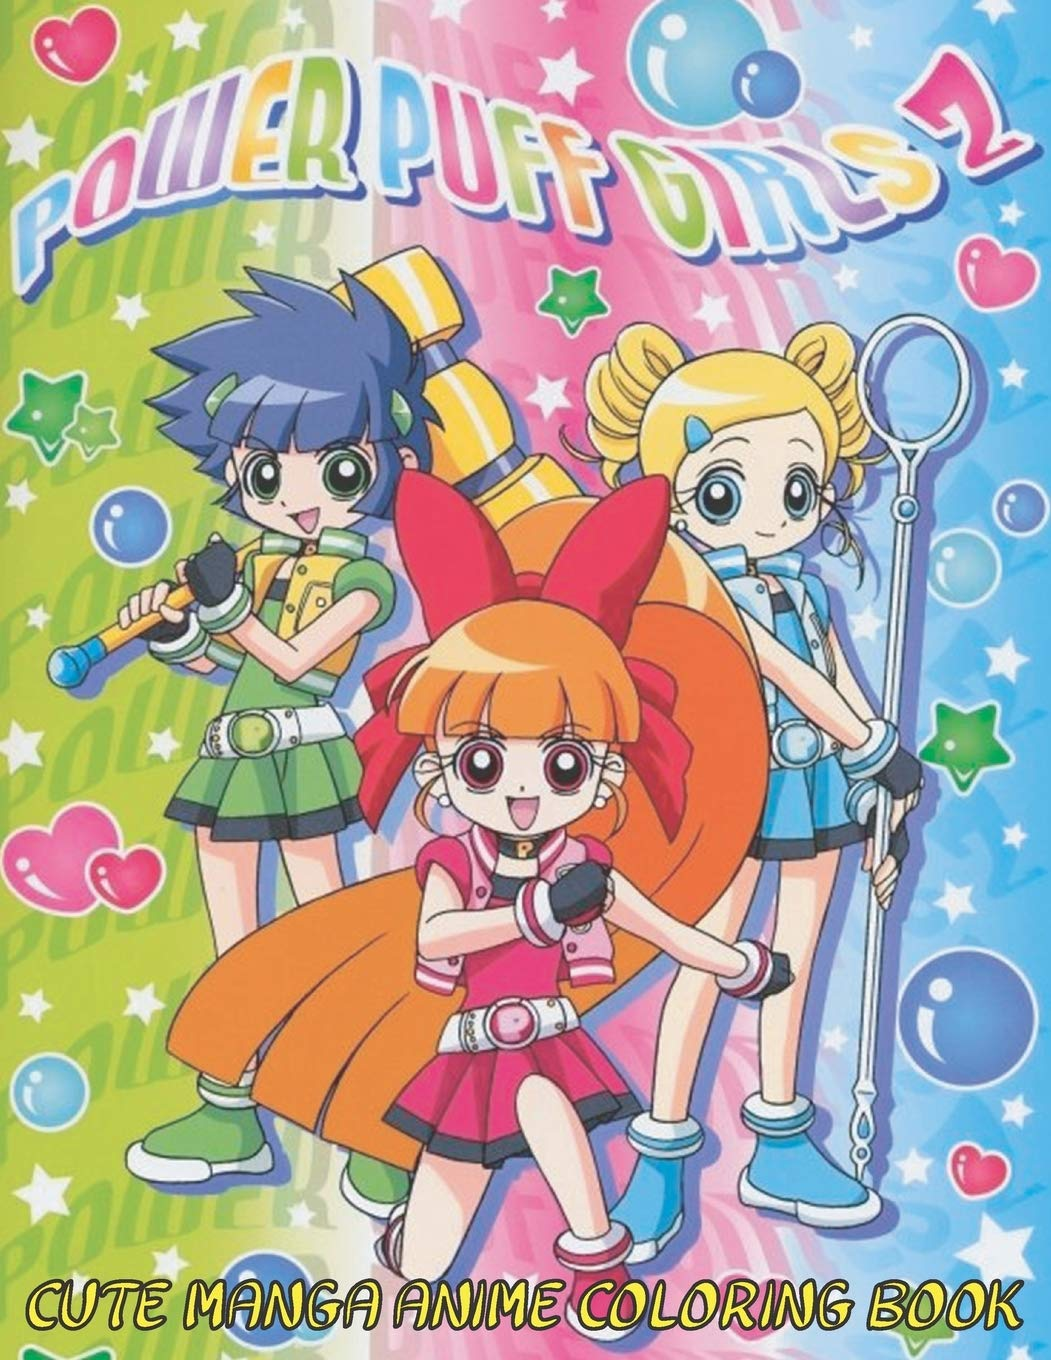 - Cute Manga Anime Coloring Book: Girl Power Super Heroes Kawaii